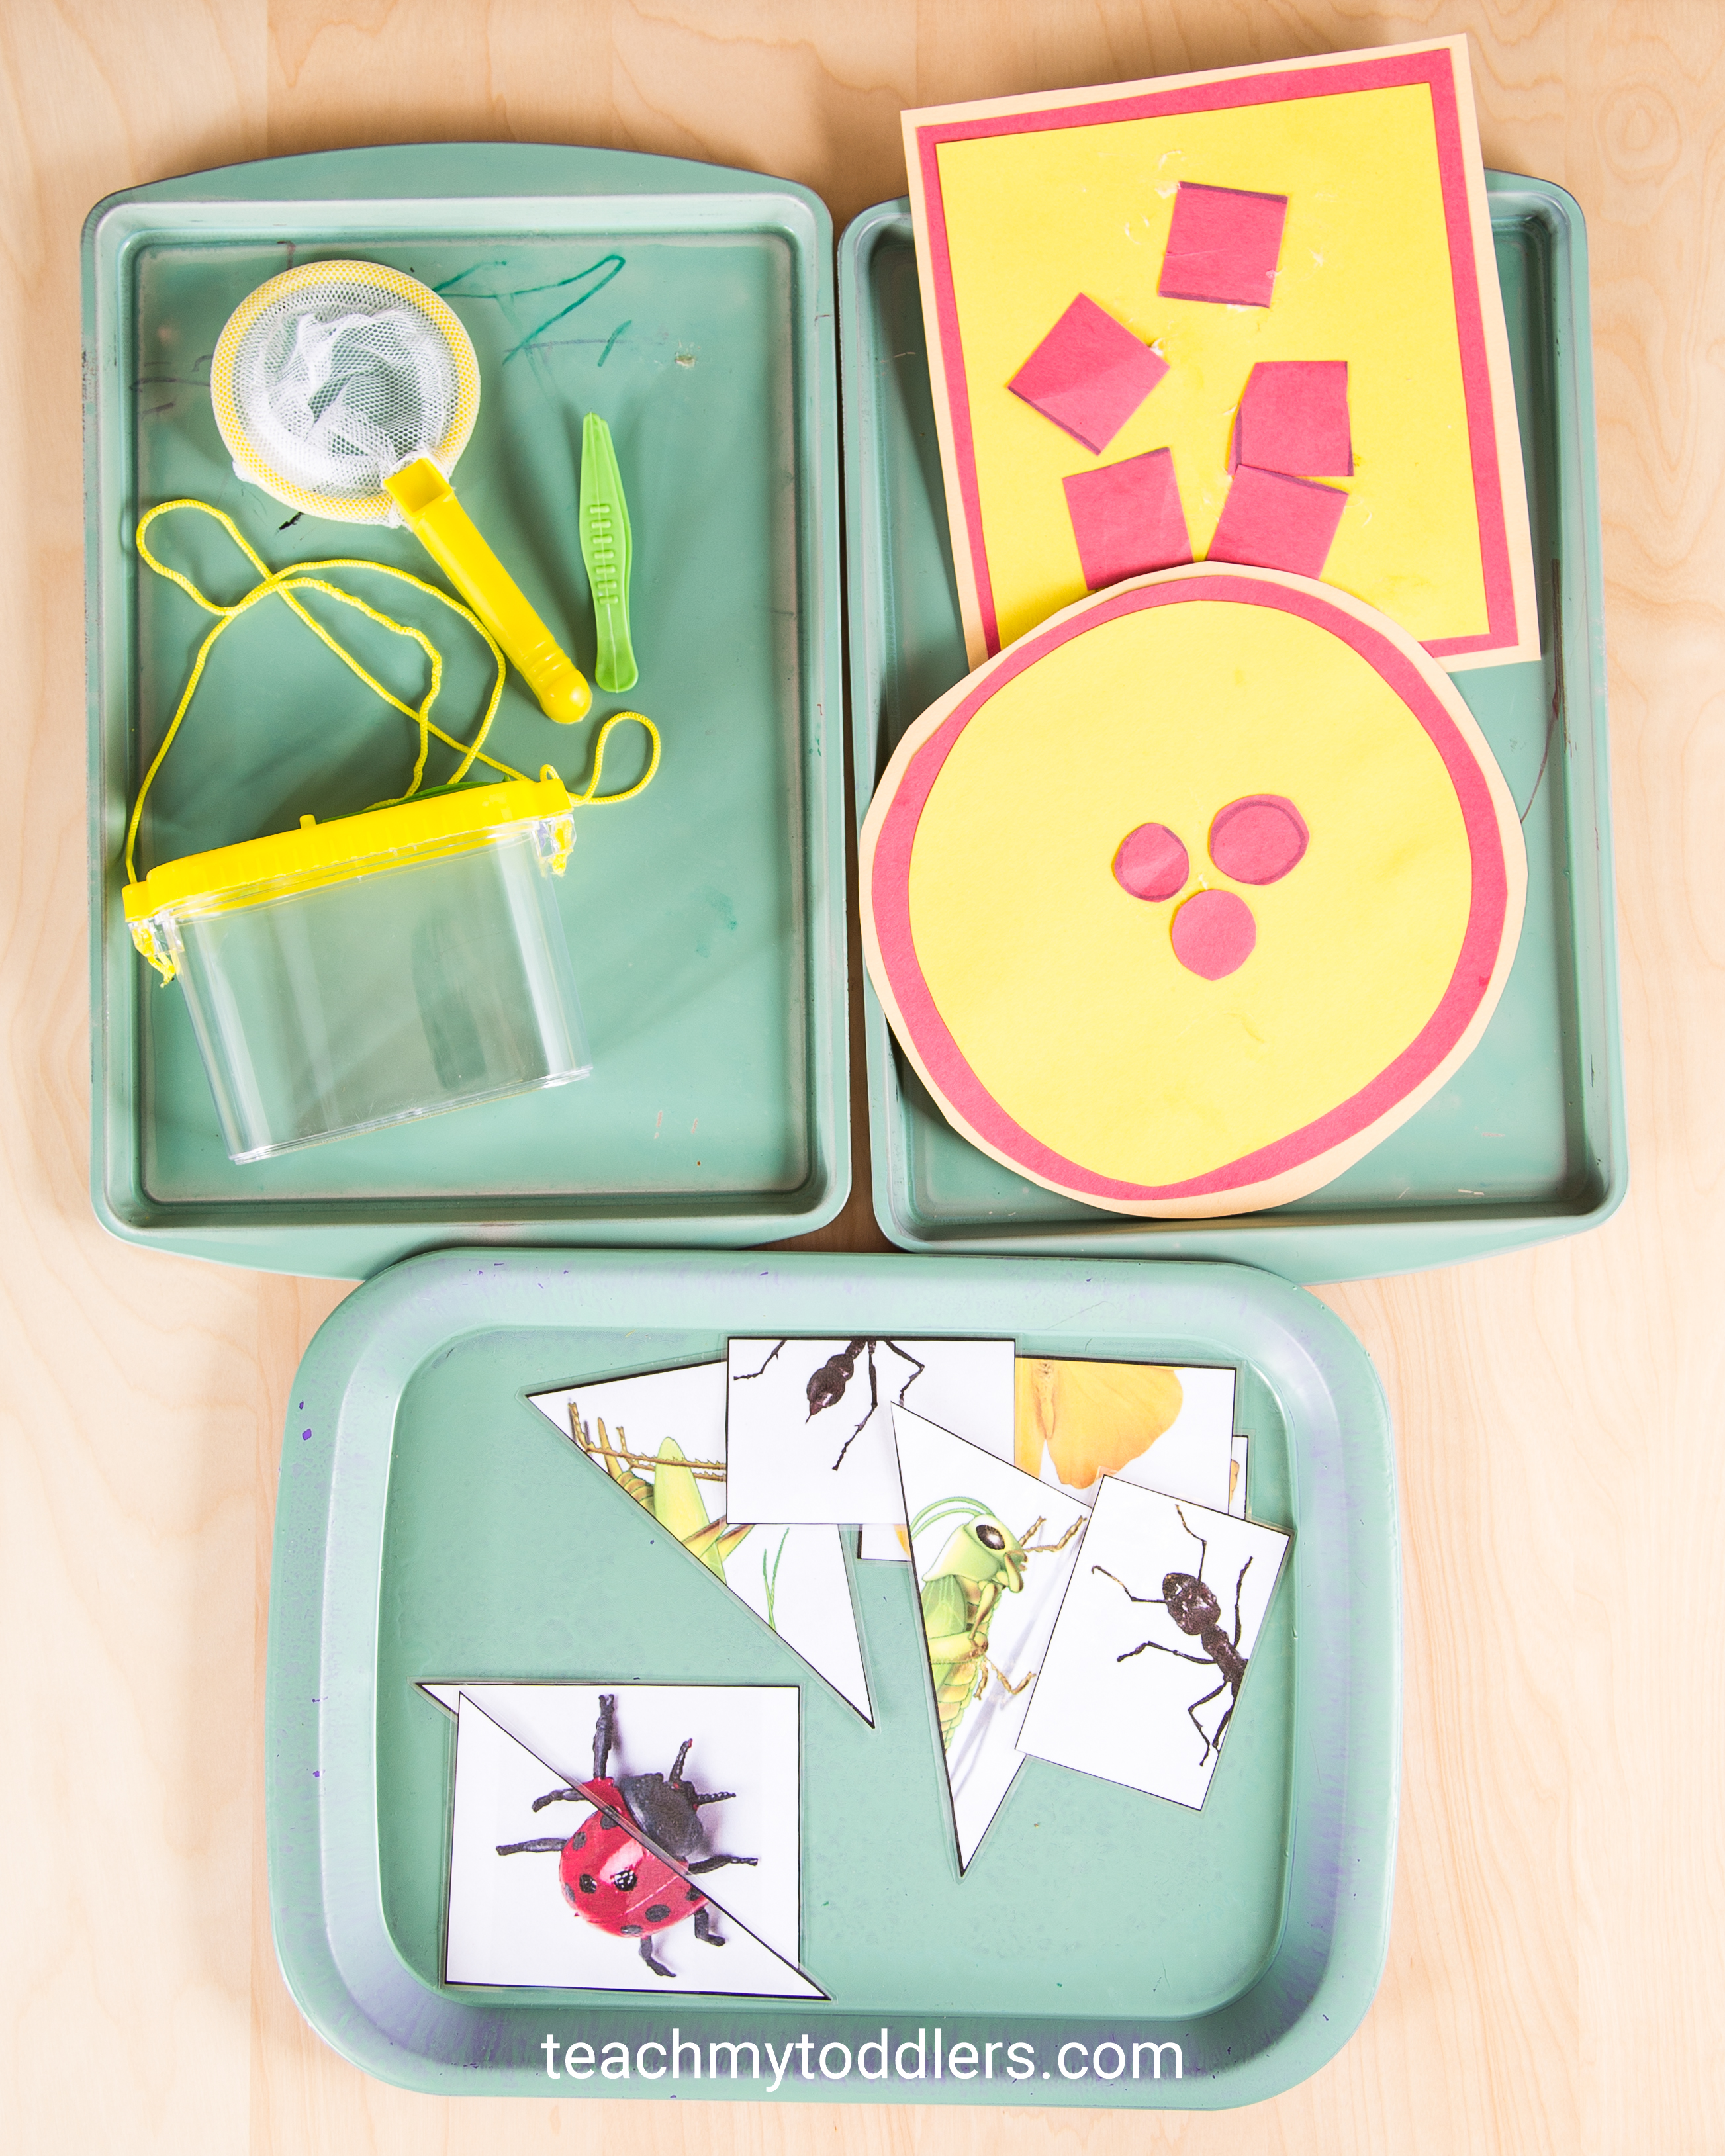 Find out how to use these bug trays to teach your toddlers about bugs